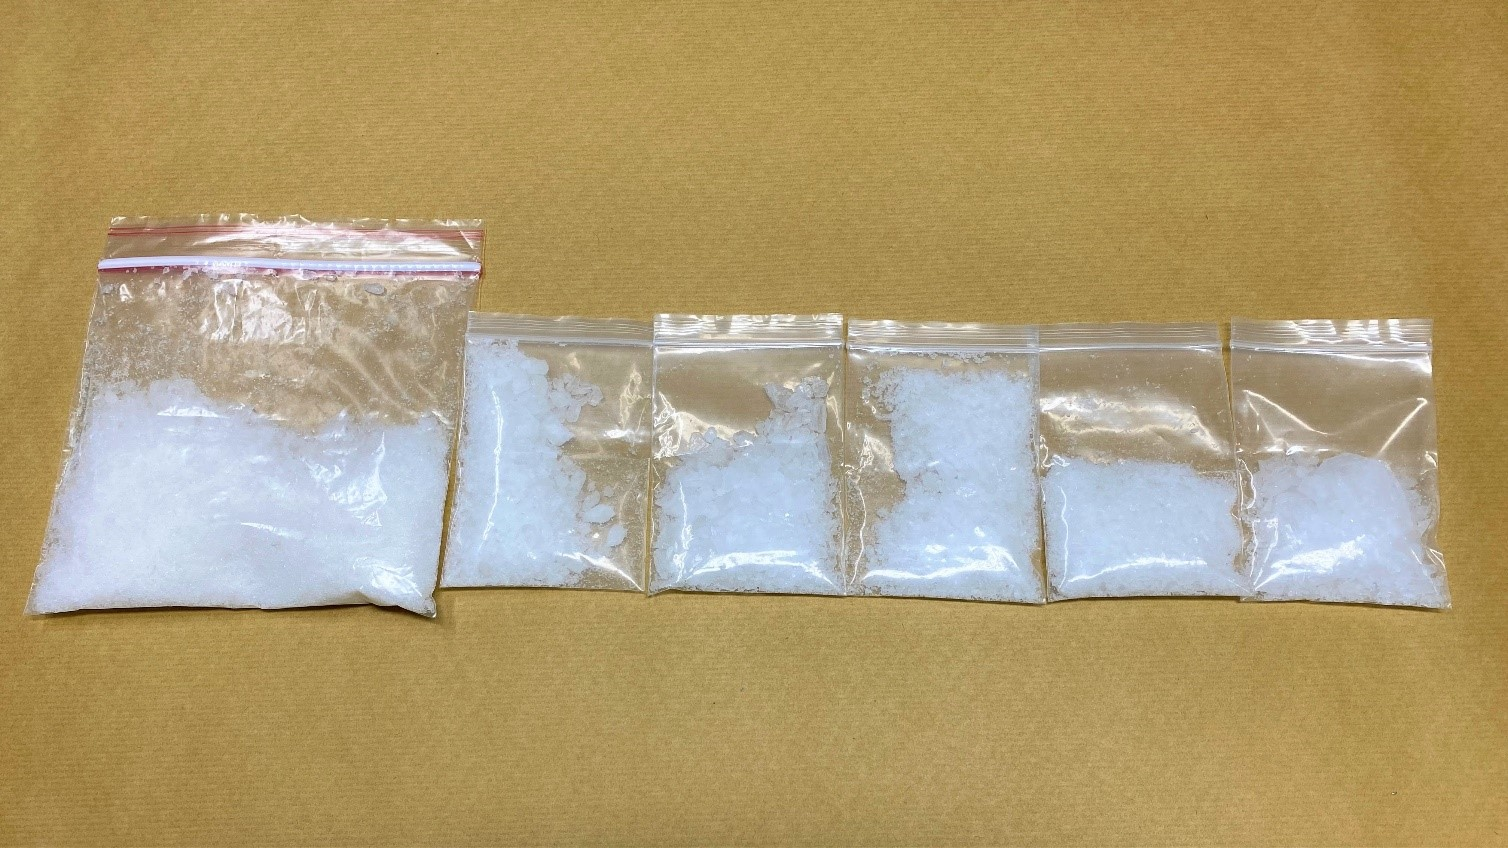 Photo 1:Packets of 'Ice' recovered in the vicinity of Sumang Lane during a CNB operation on 23 November 2020